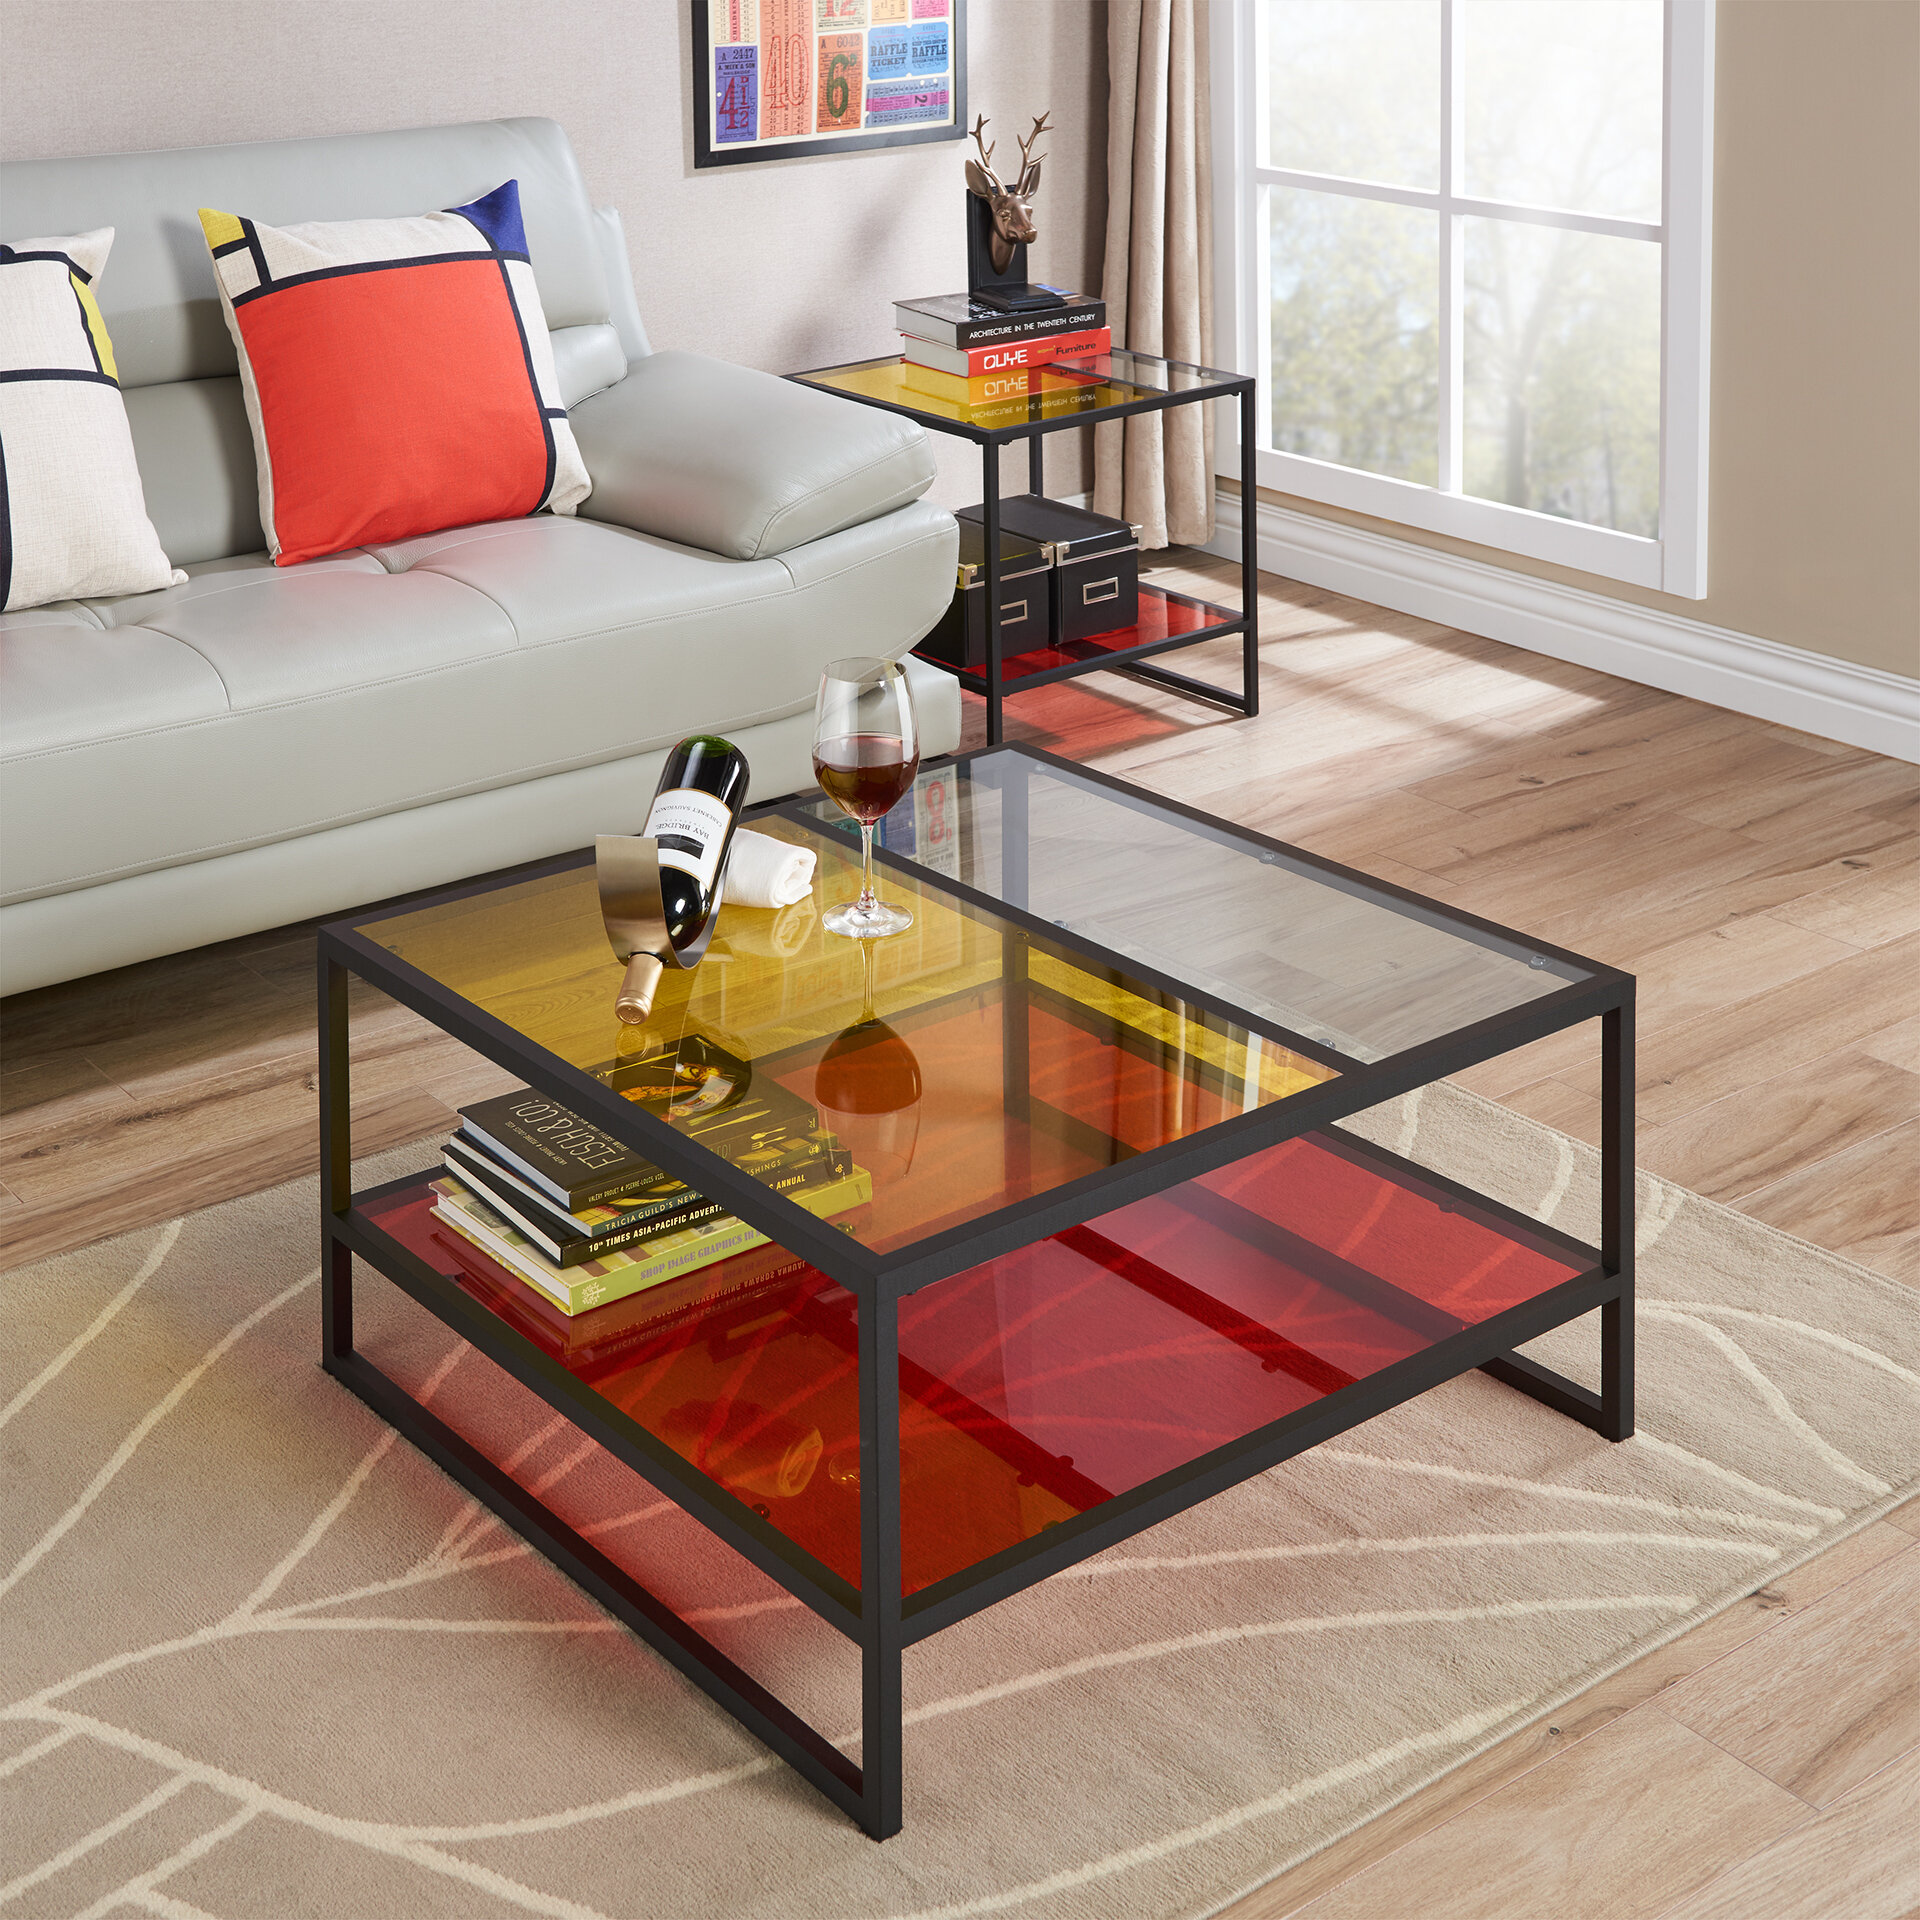 Details About Latitude Run Leetsdale Contemporary Coffee Table With Magazine Rack